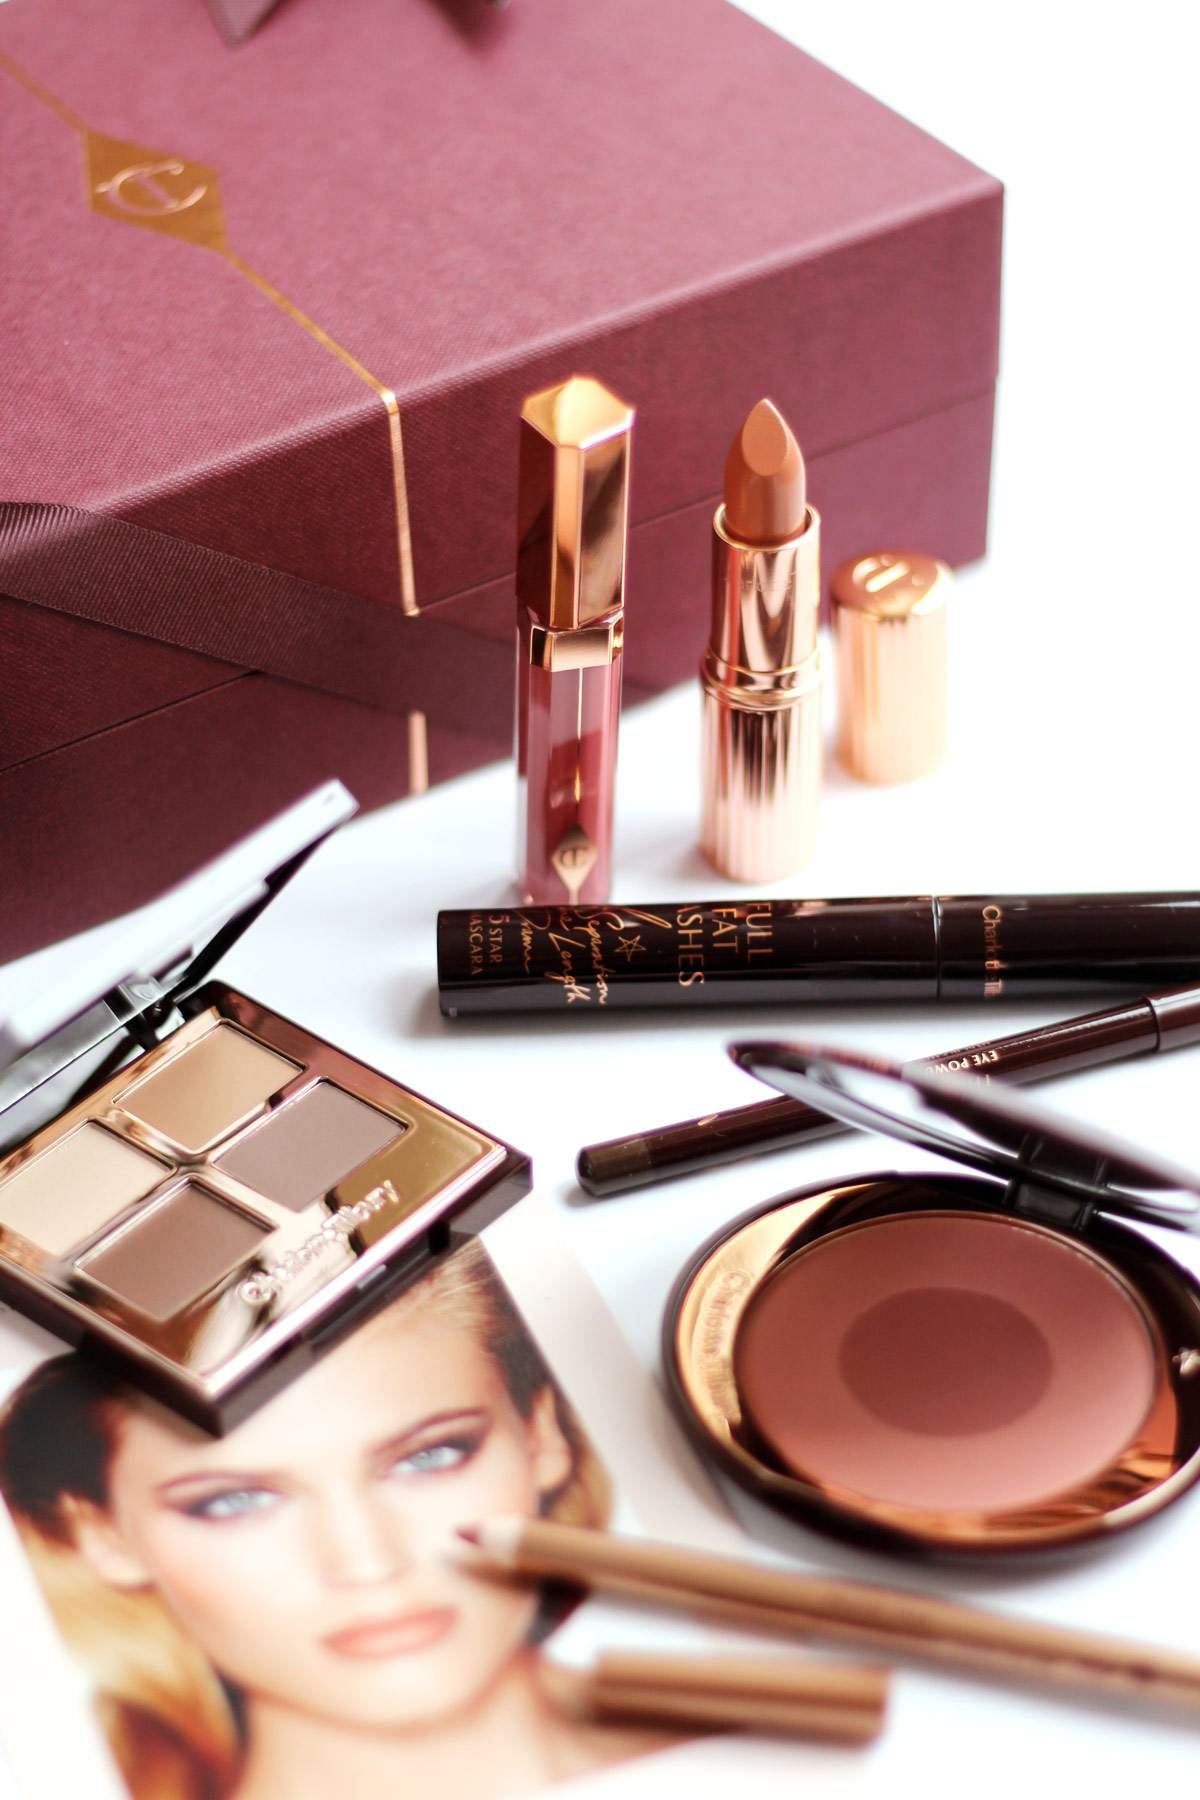 charlotte-tilbury-fenwick-newcastle-event-makeup-look-in-a-box-the-sophisticate-honey-love-lipstick